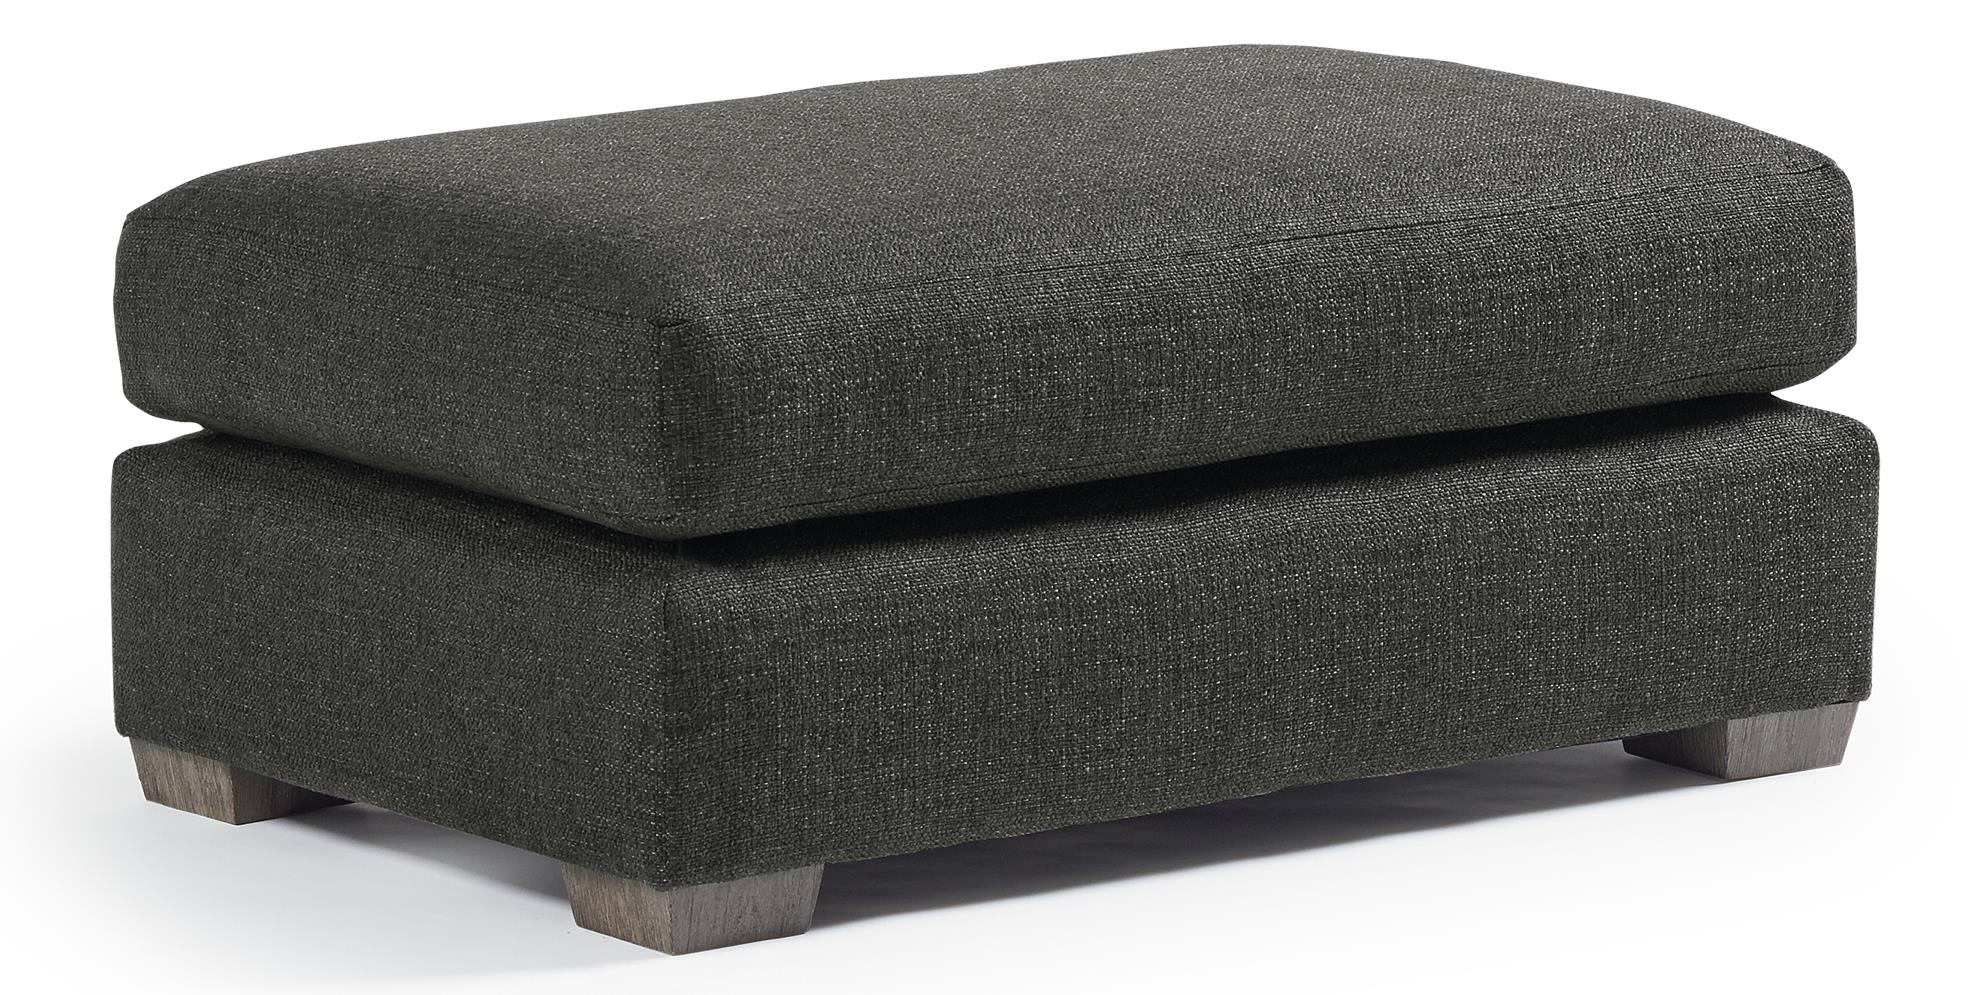 Best Home Furnishings Sophia Ottoman - Item Number: F69-21953